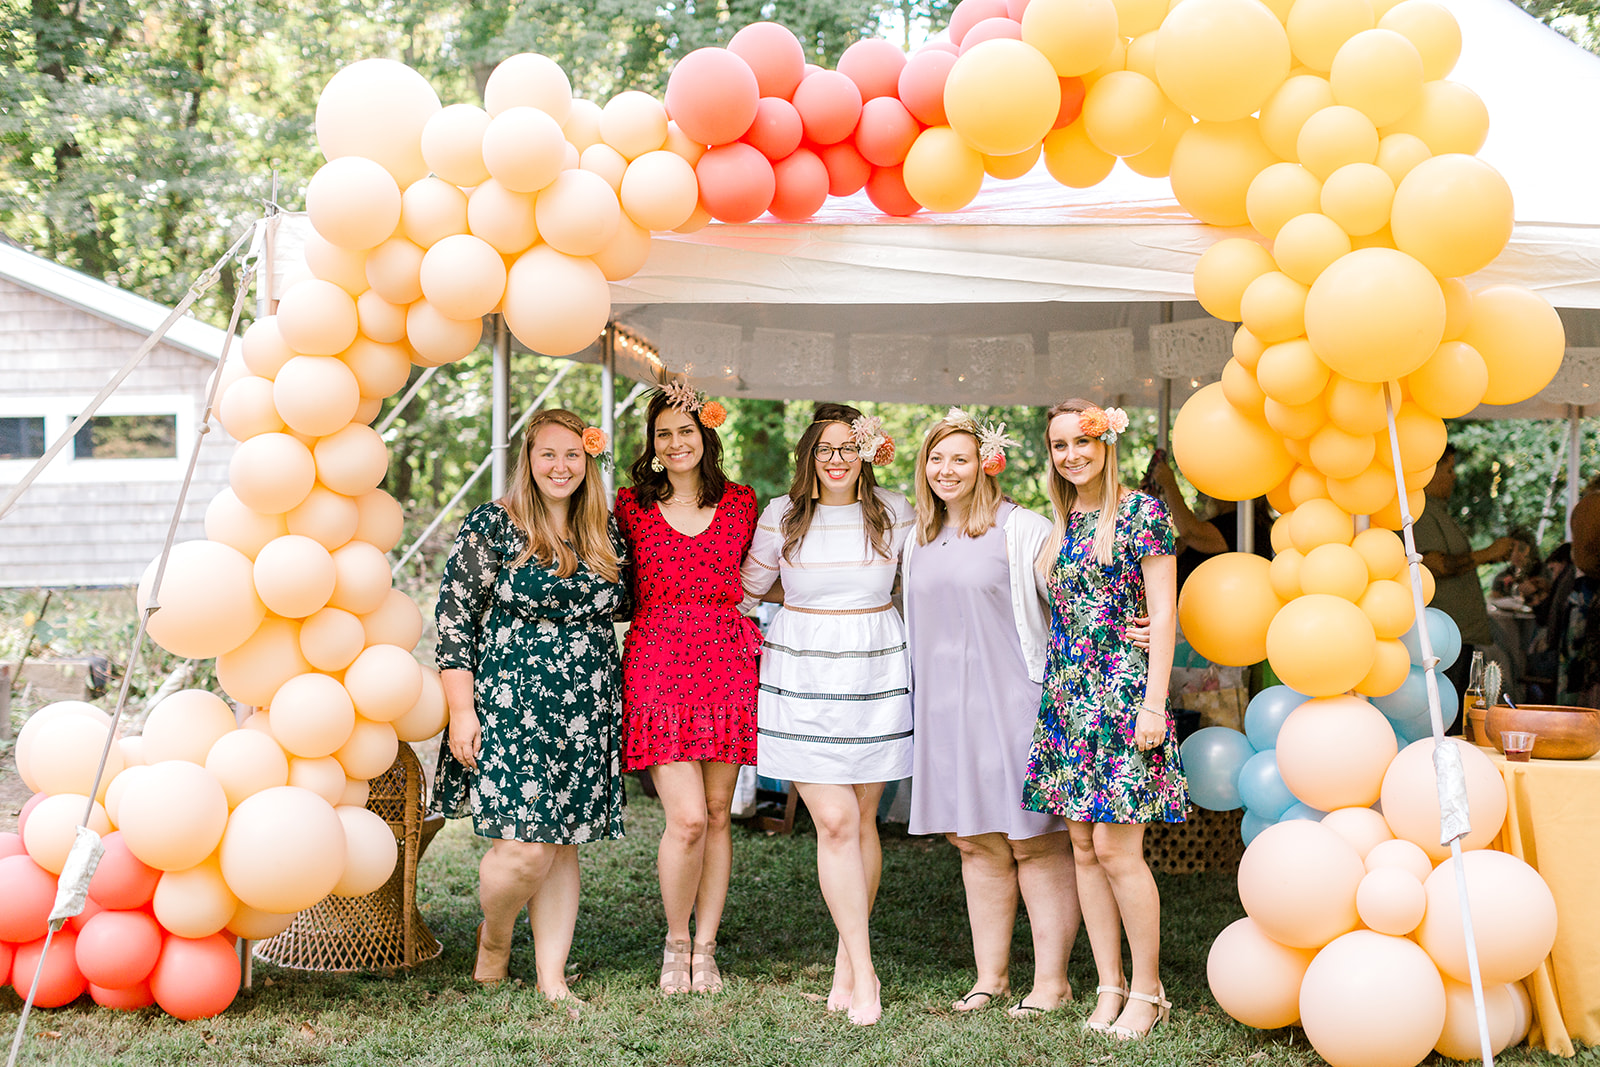 Gabi_s+Bridal+Shower-175.jpg